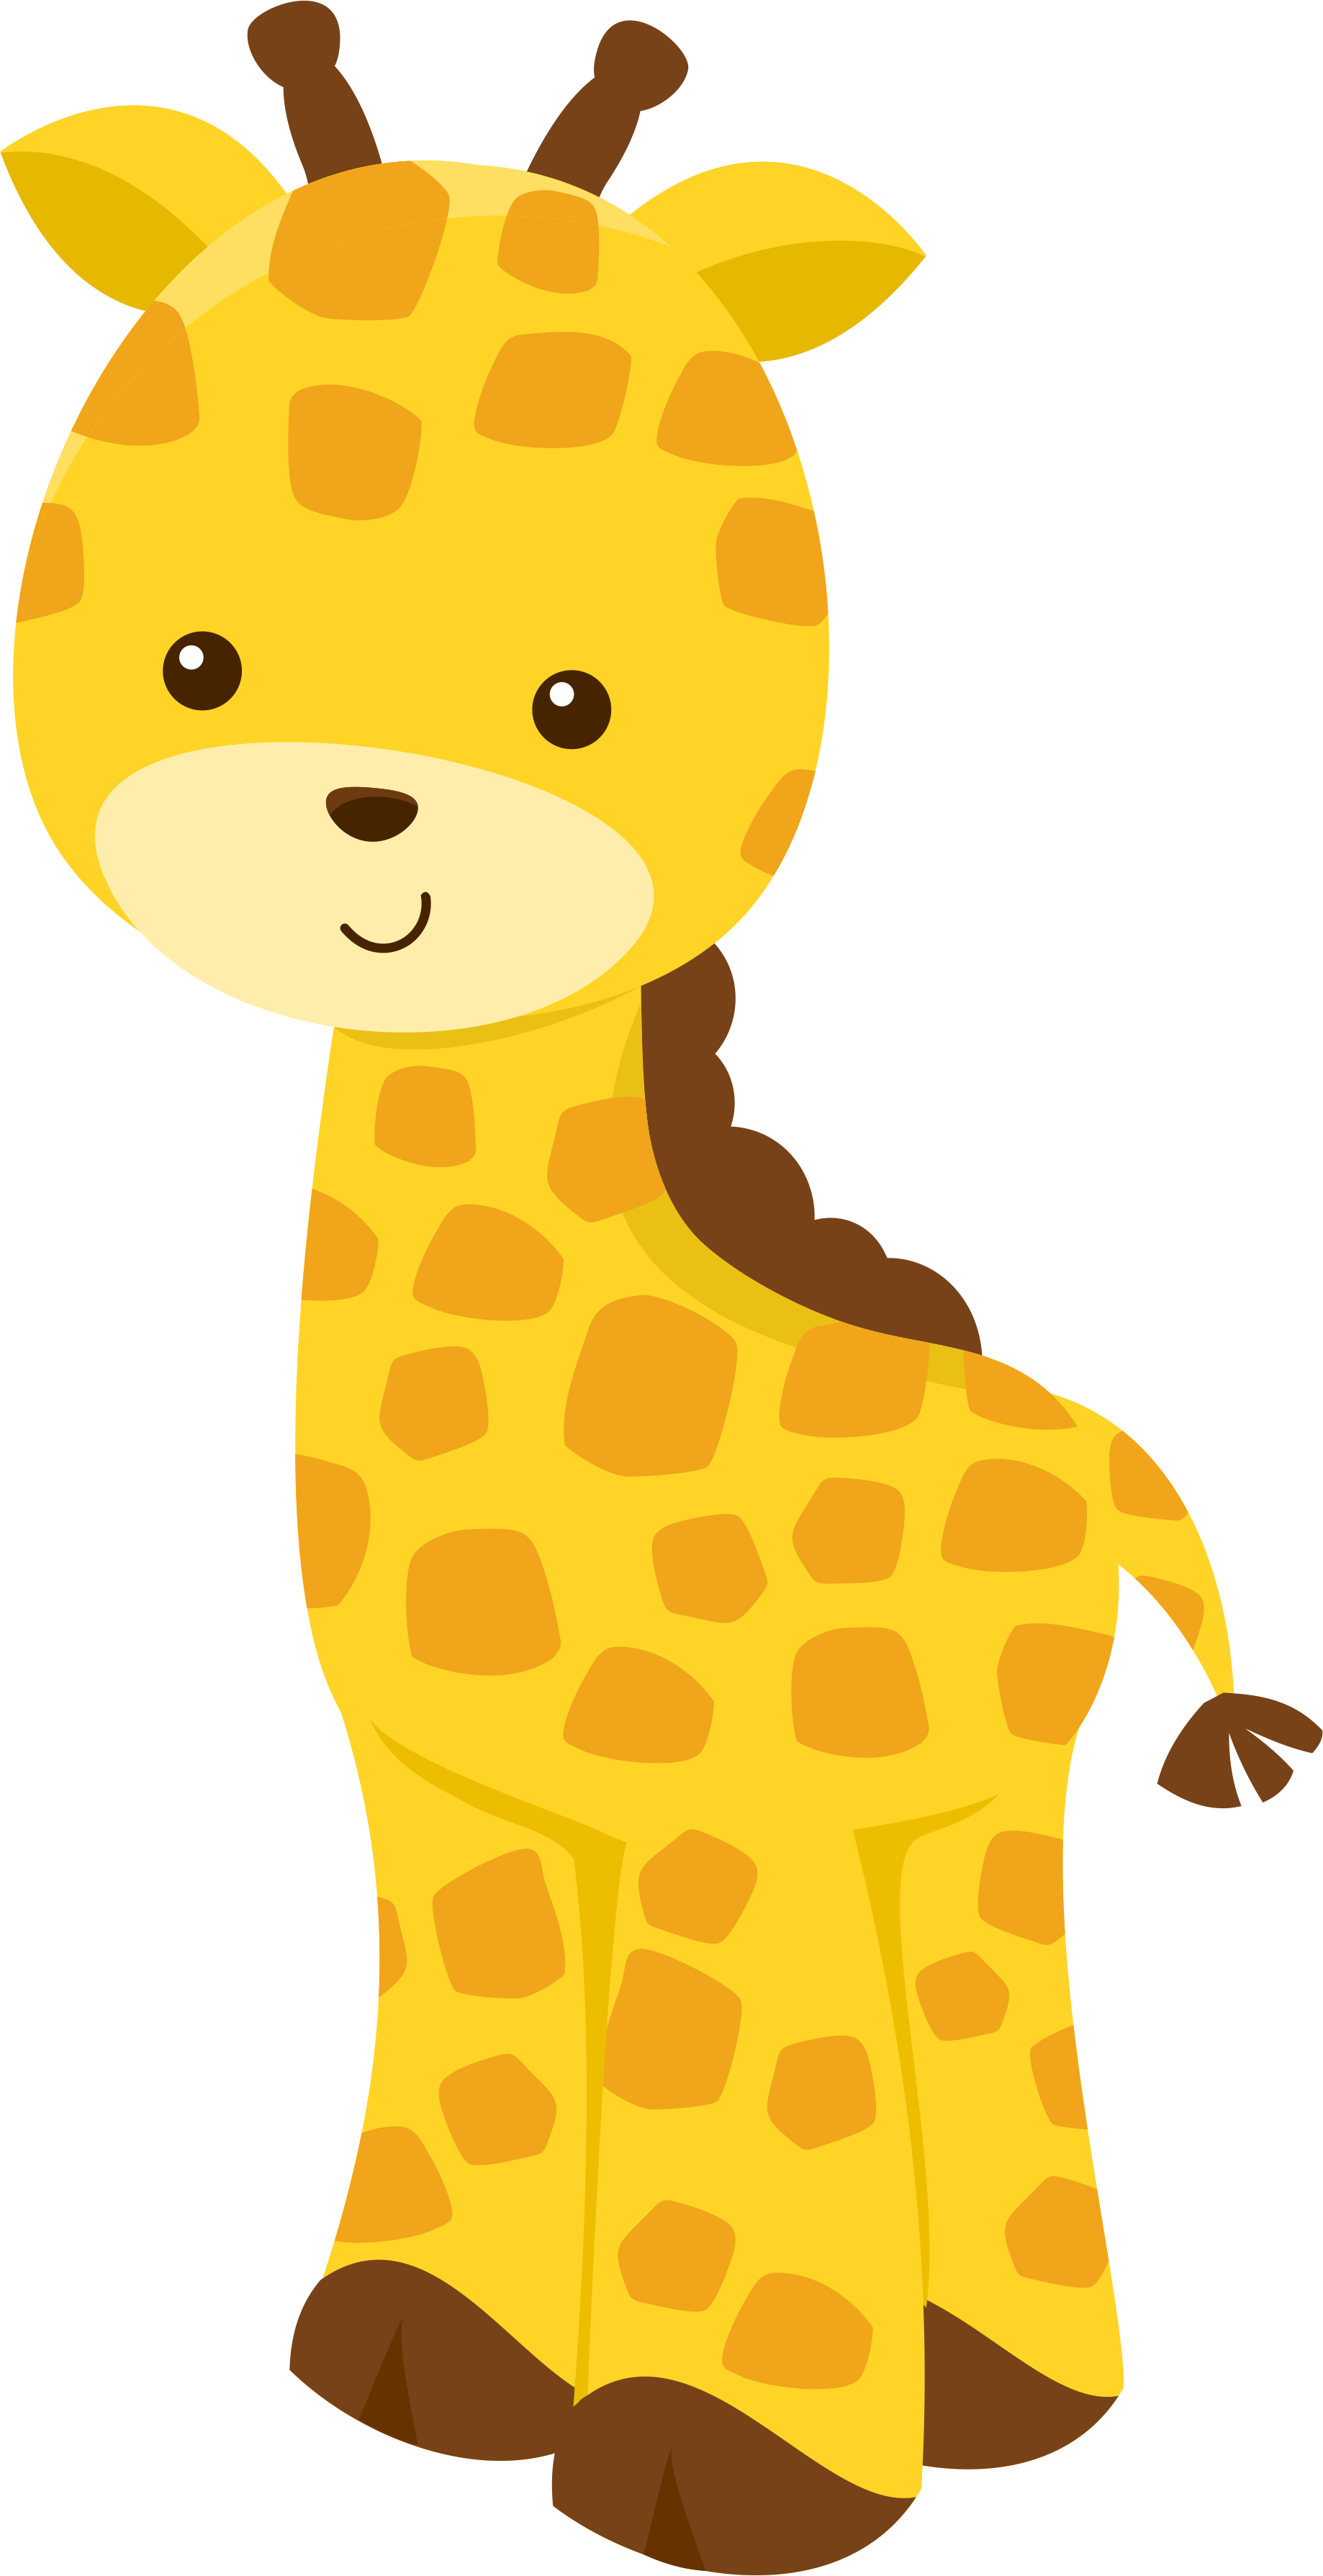 Girafa safari png clipart images gallery for free download.